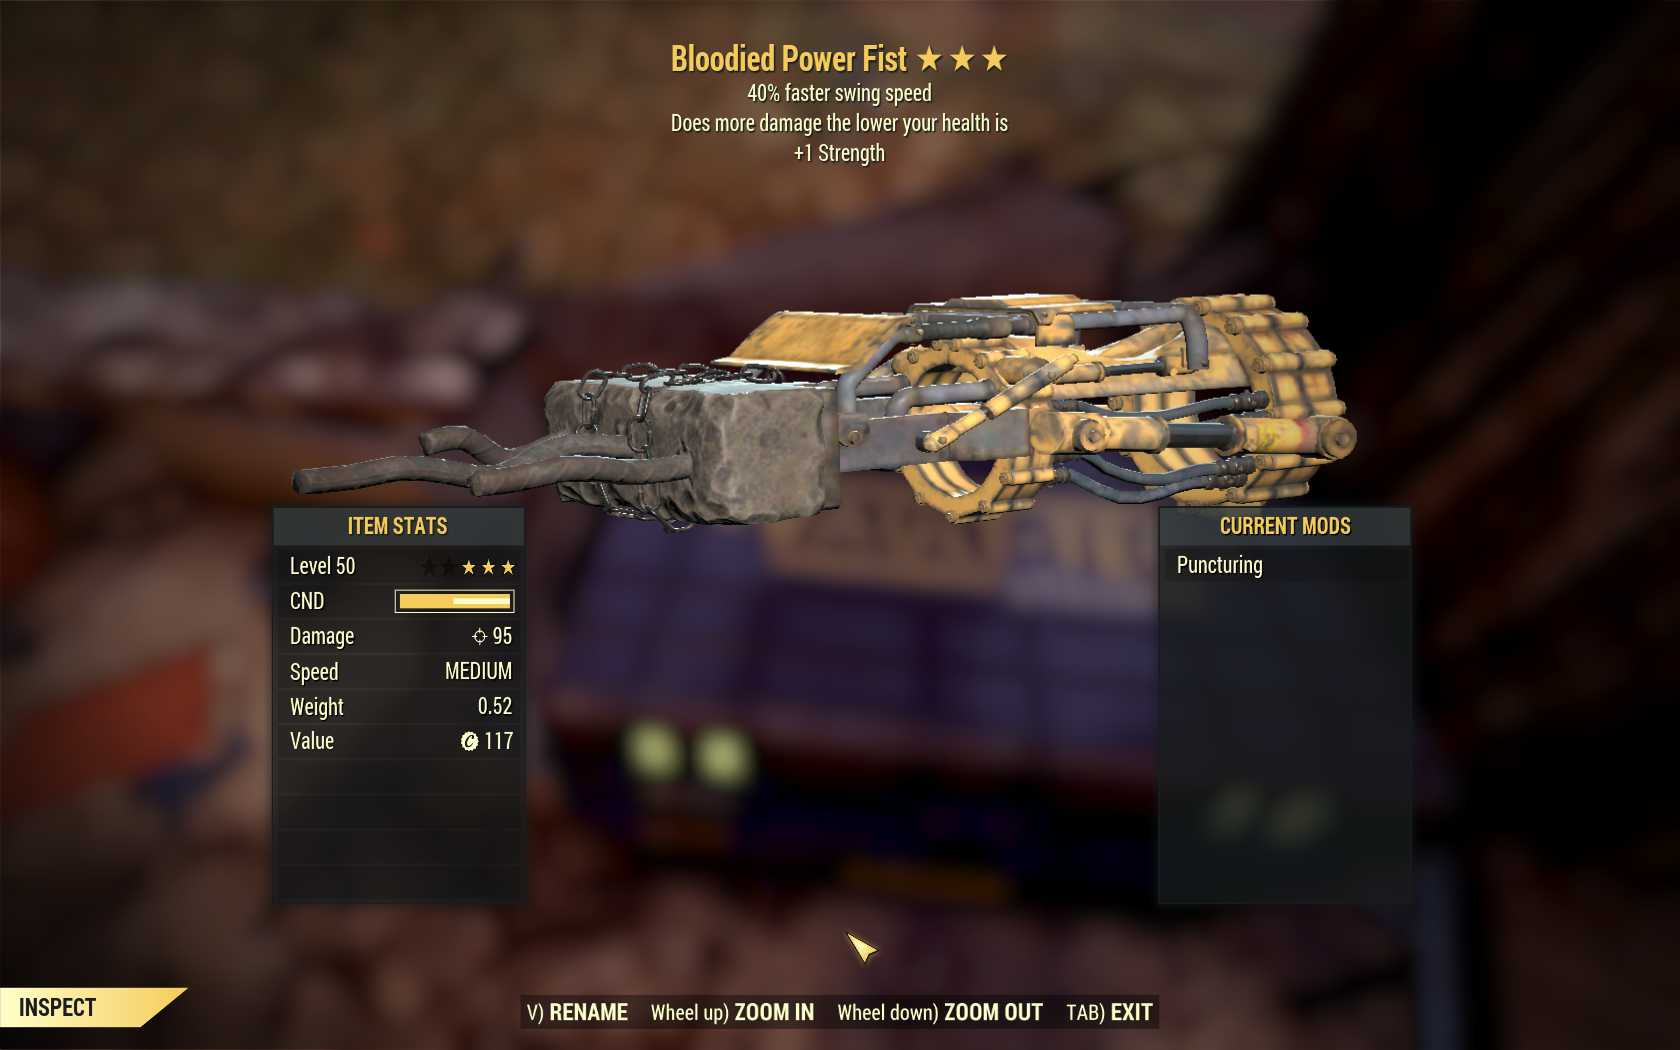 Bloodied Power Fist (40% Faster Swing Speed, +1 Strength)